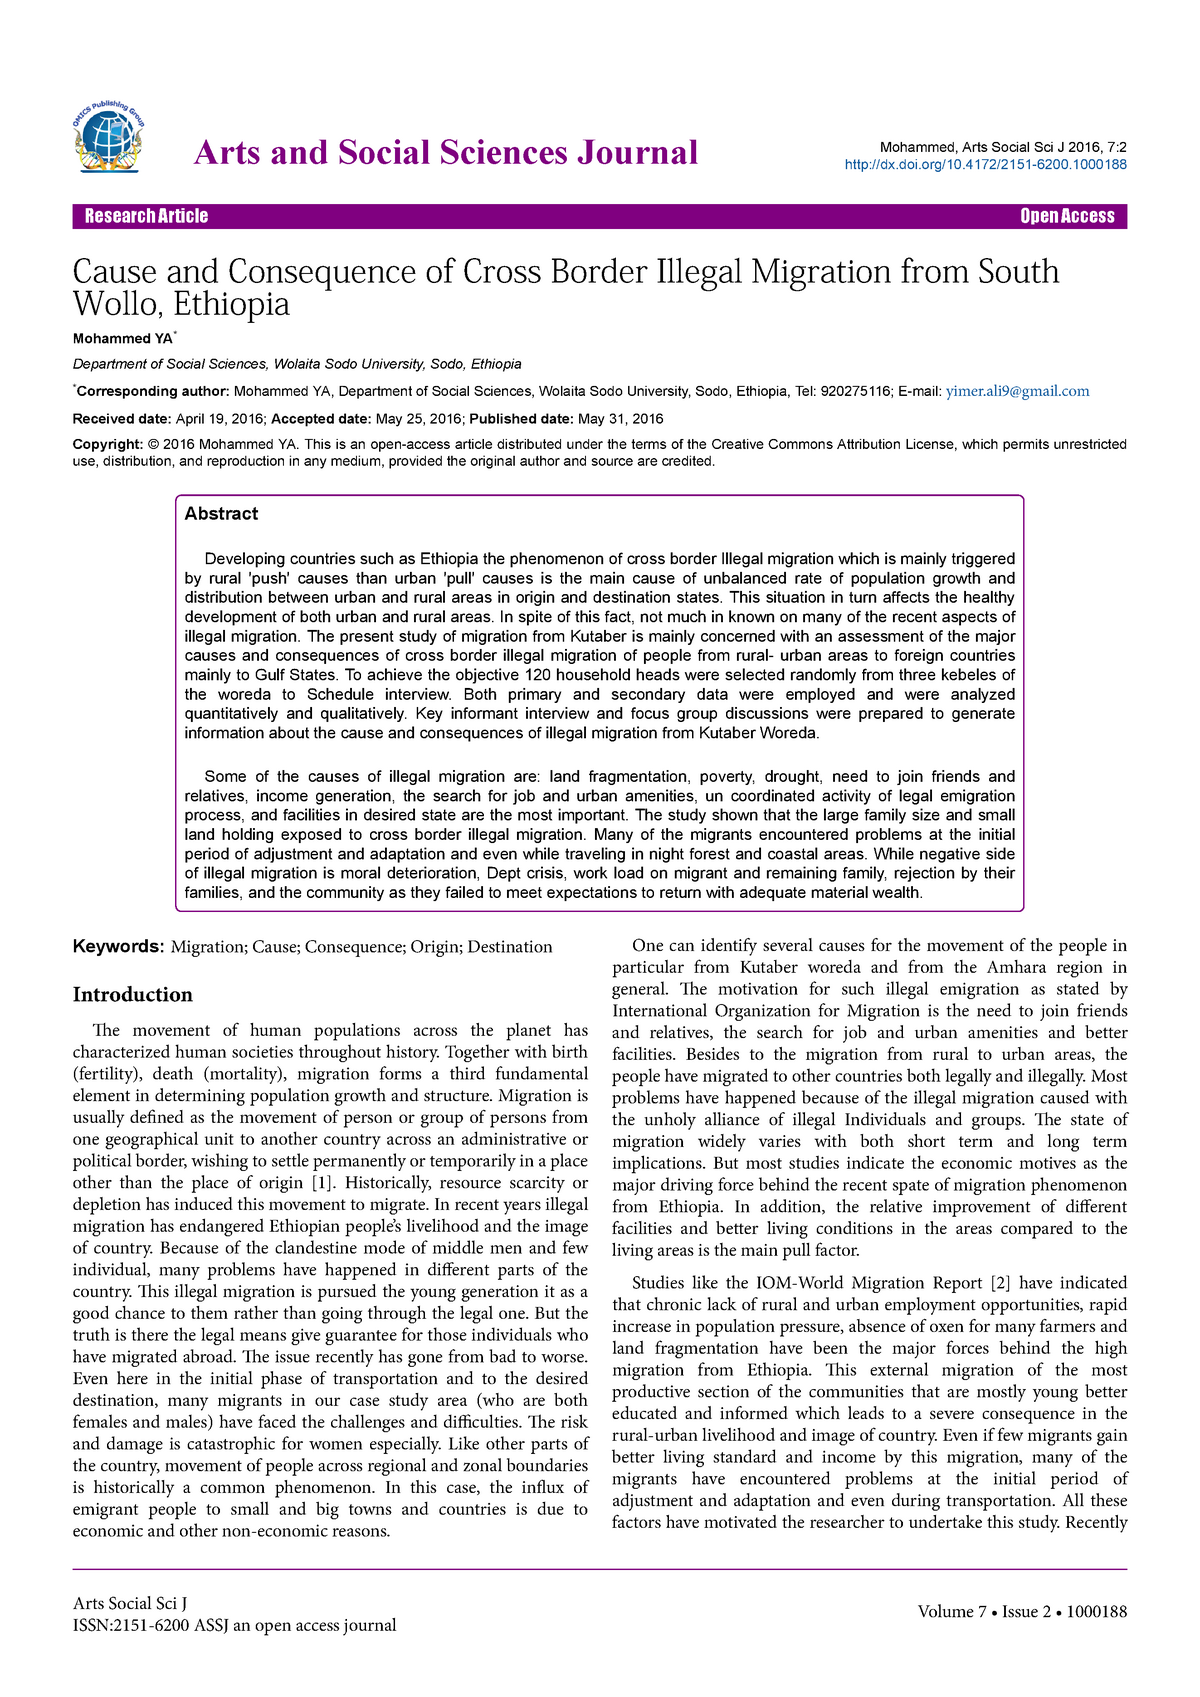 Cause and consequence of cross border illegal migration from